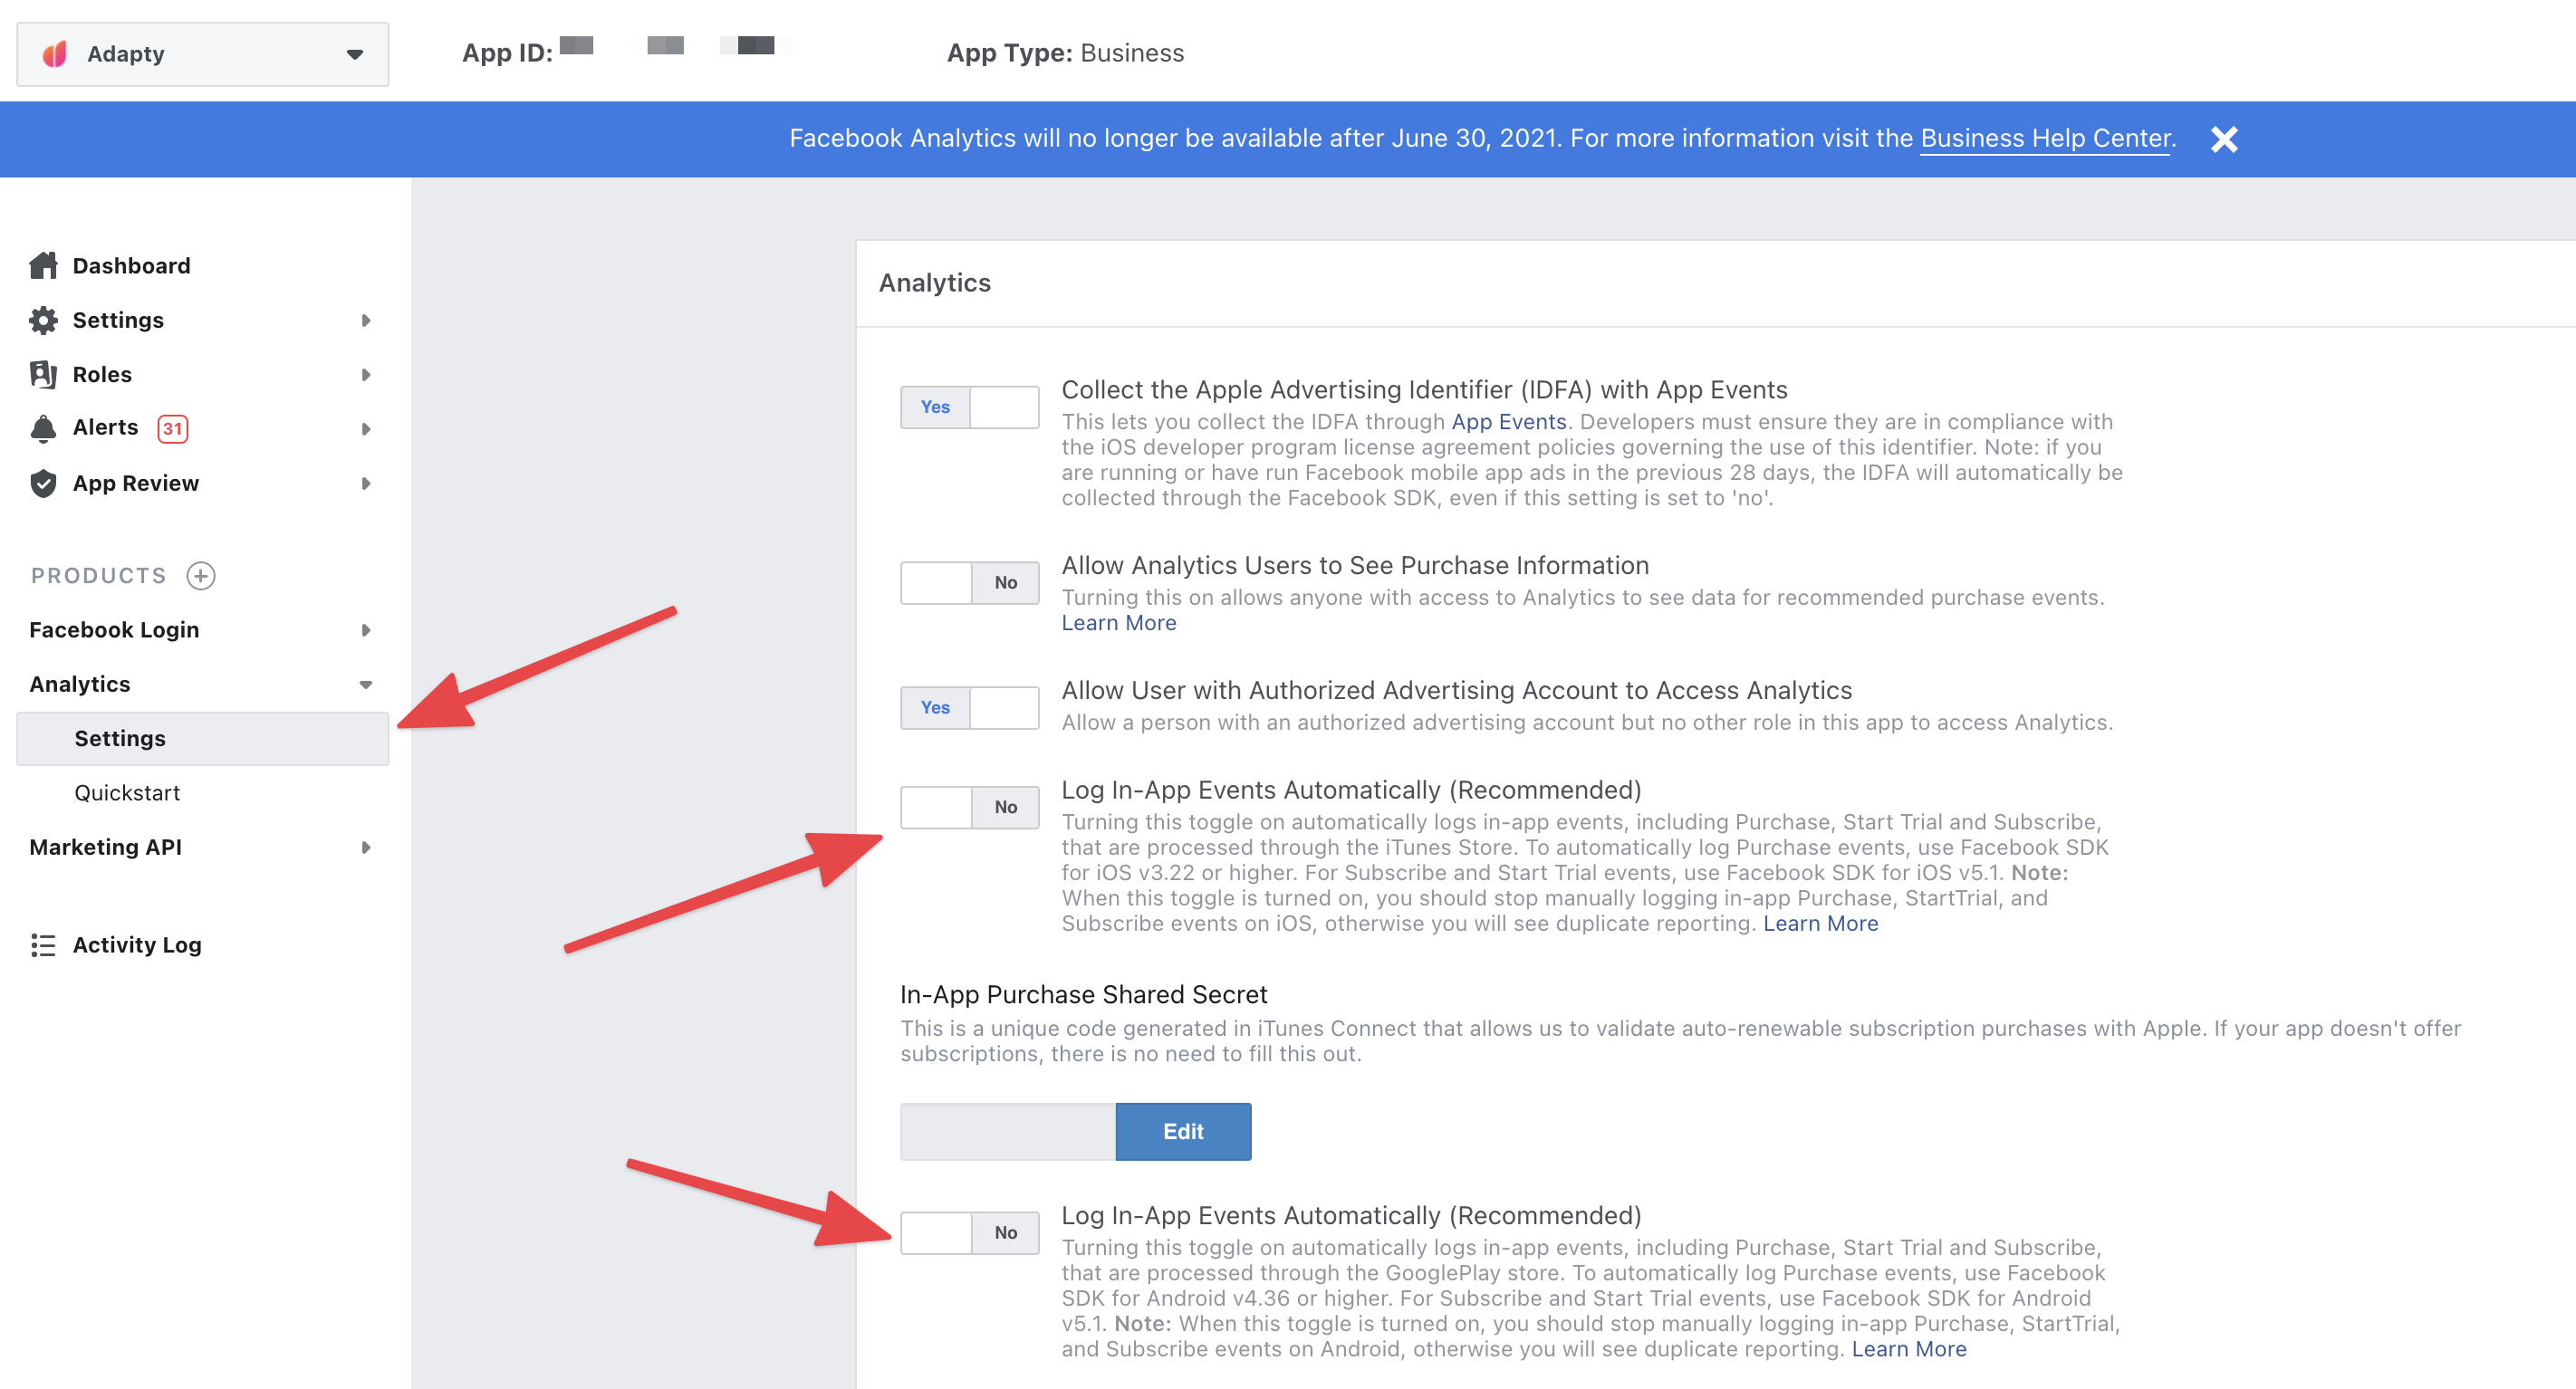 Disable in-app events logging in the Facebook SDK to avoid duplications